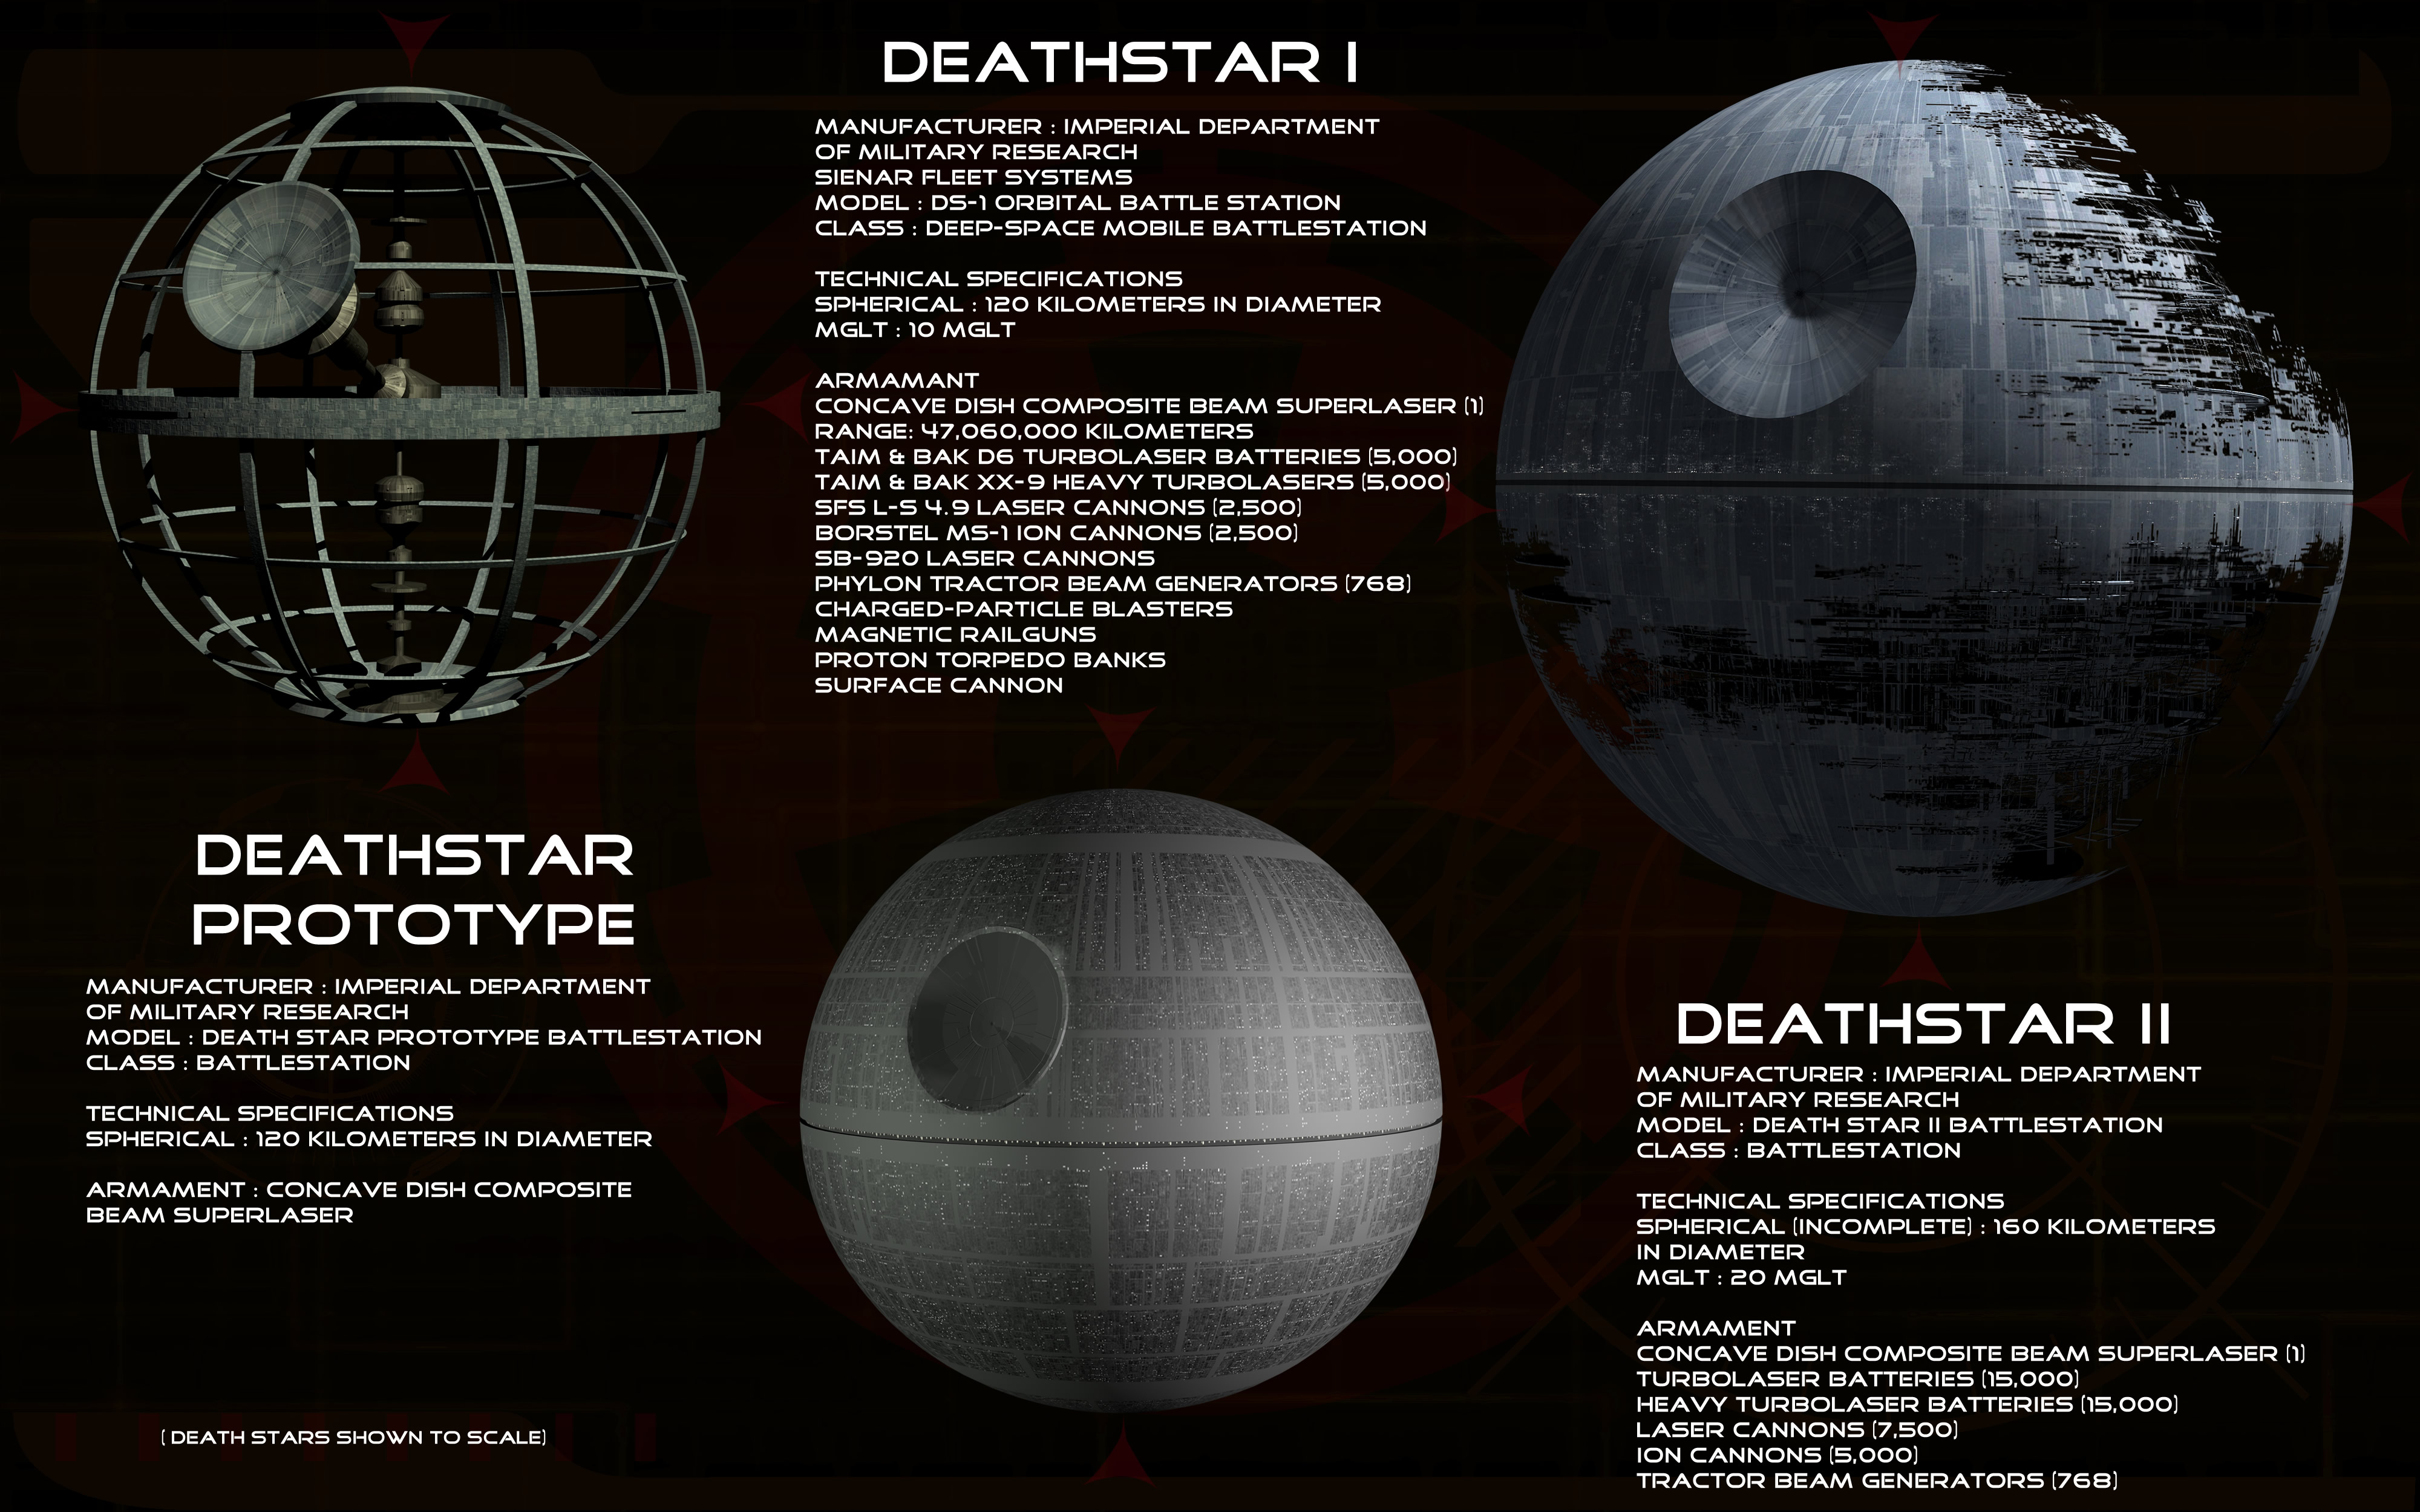 The Death Star from Star Wars